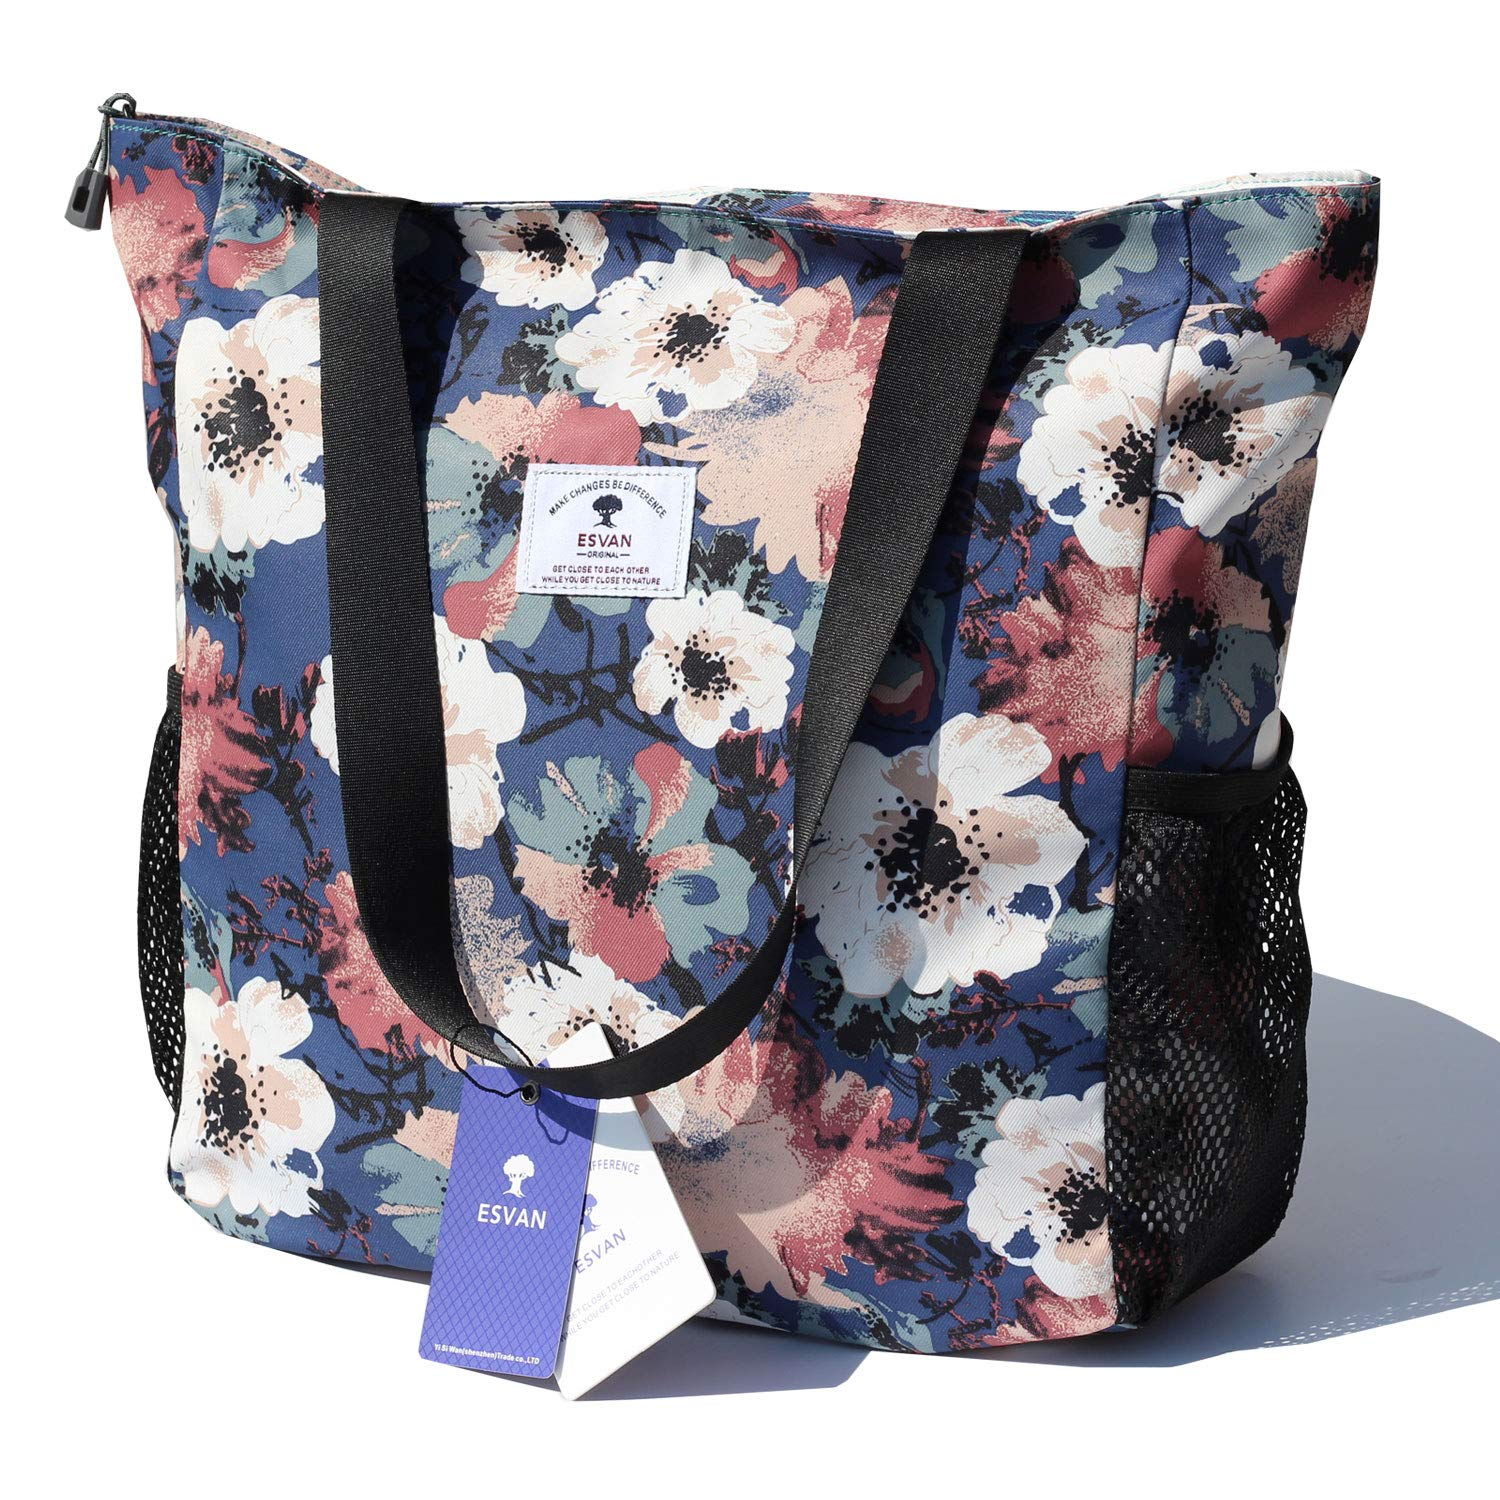 Original Floral Water Resistant Large Tote Bag Shoulder Bag for Gym Beach Travel Daily Bags Upgraded